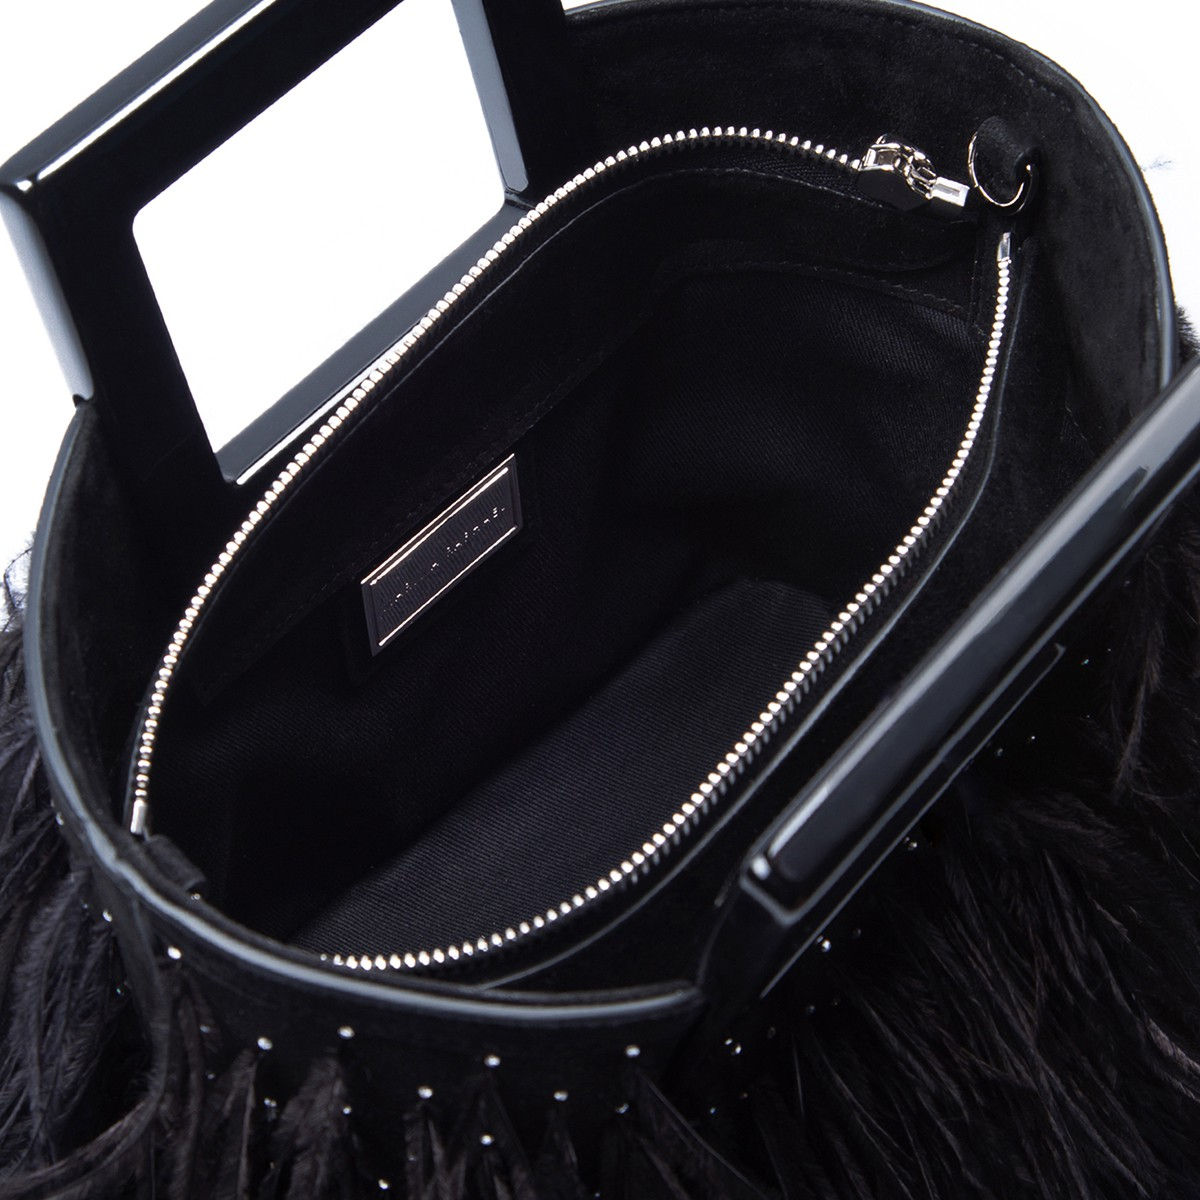 Micro Riviera in Feathered Black Suede5